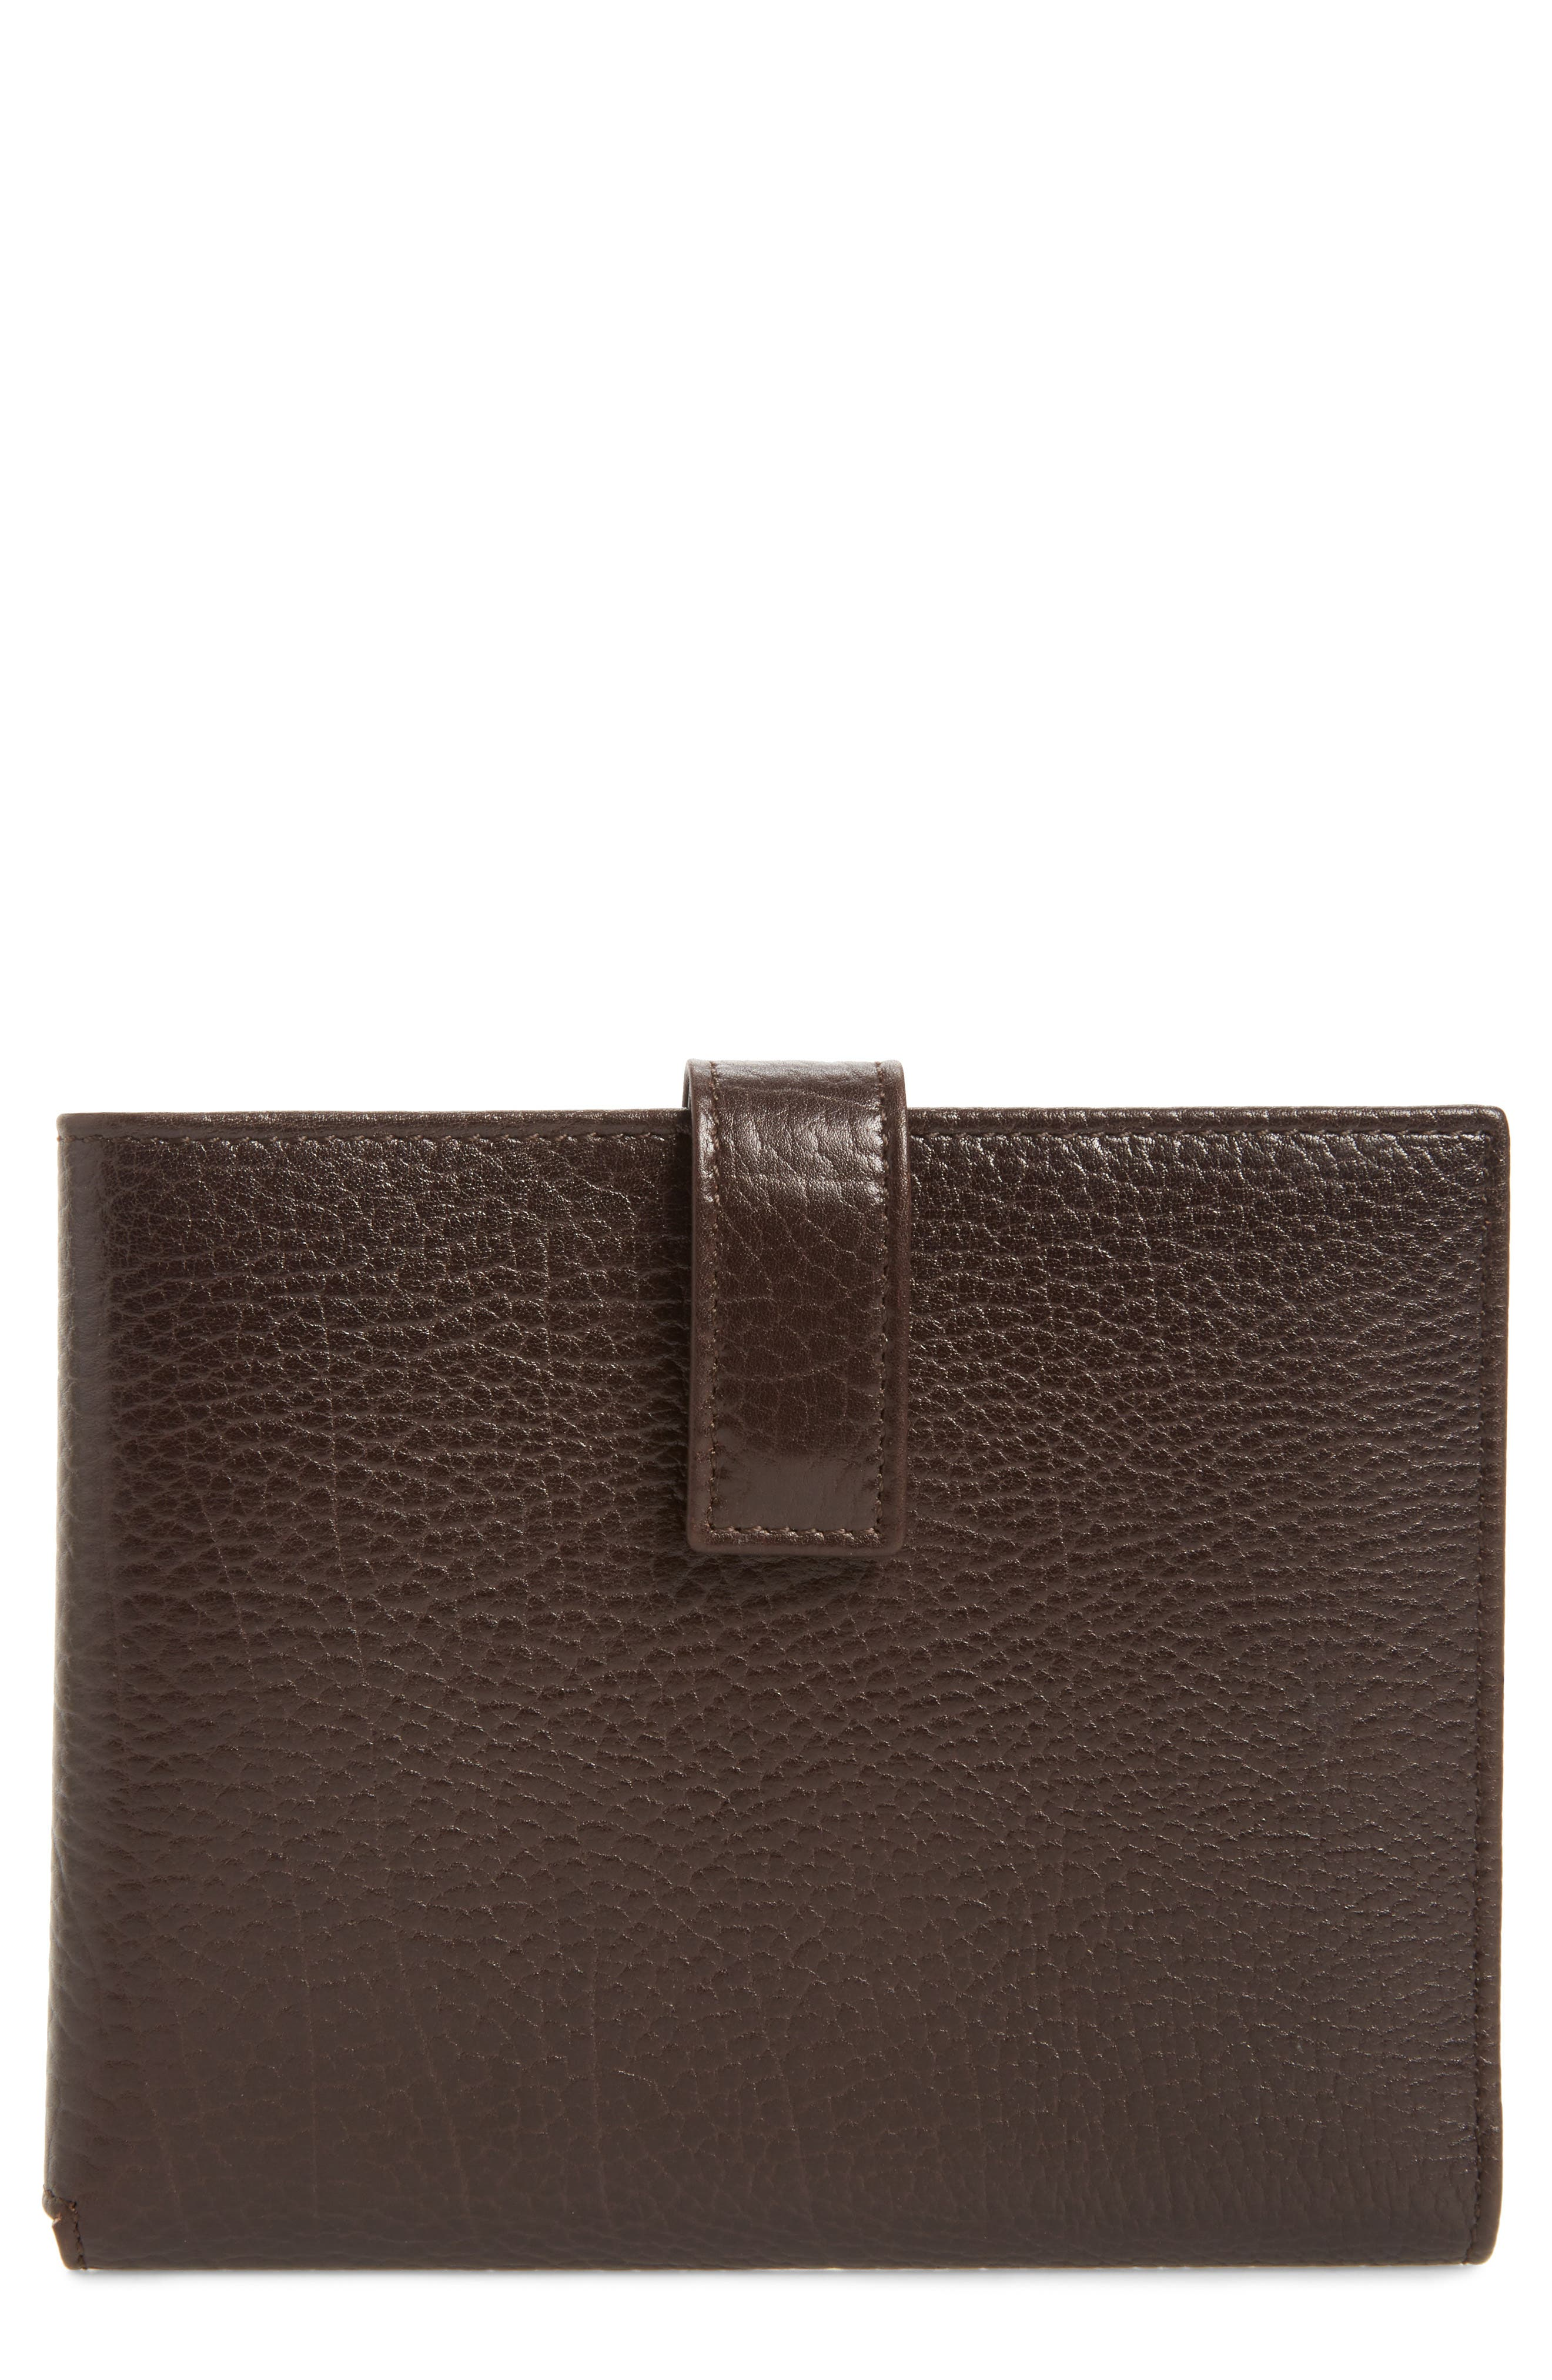 Mezlan Perseo Leather Travel Wallet